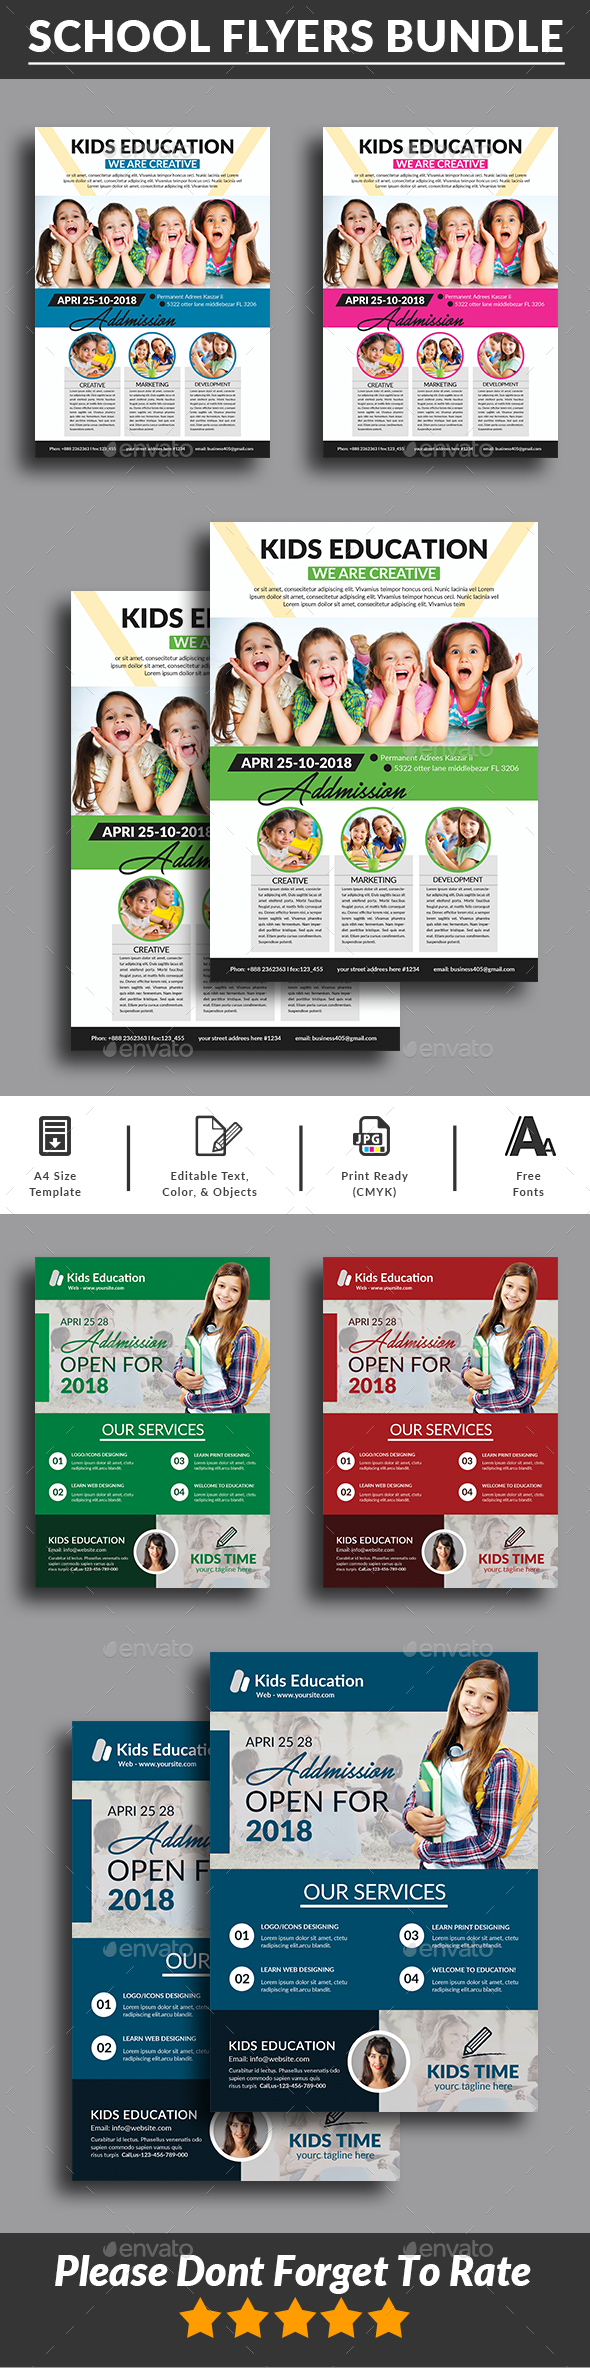 Education Flyers Bundle Templates - Corporate Flyers